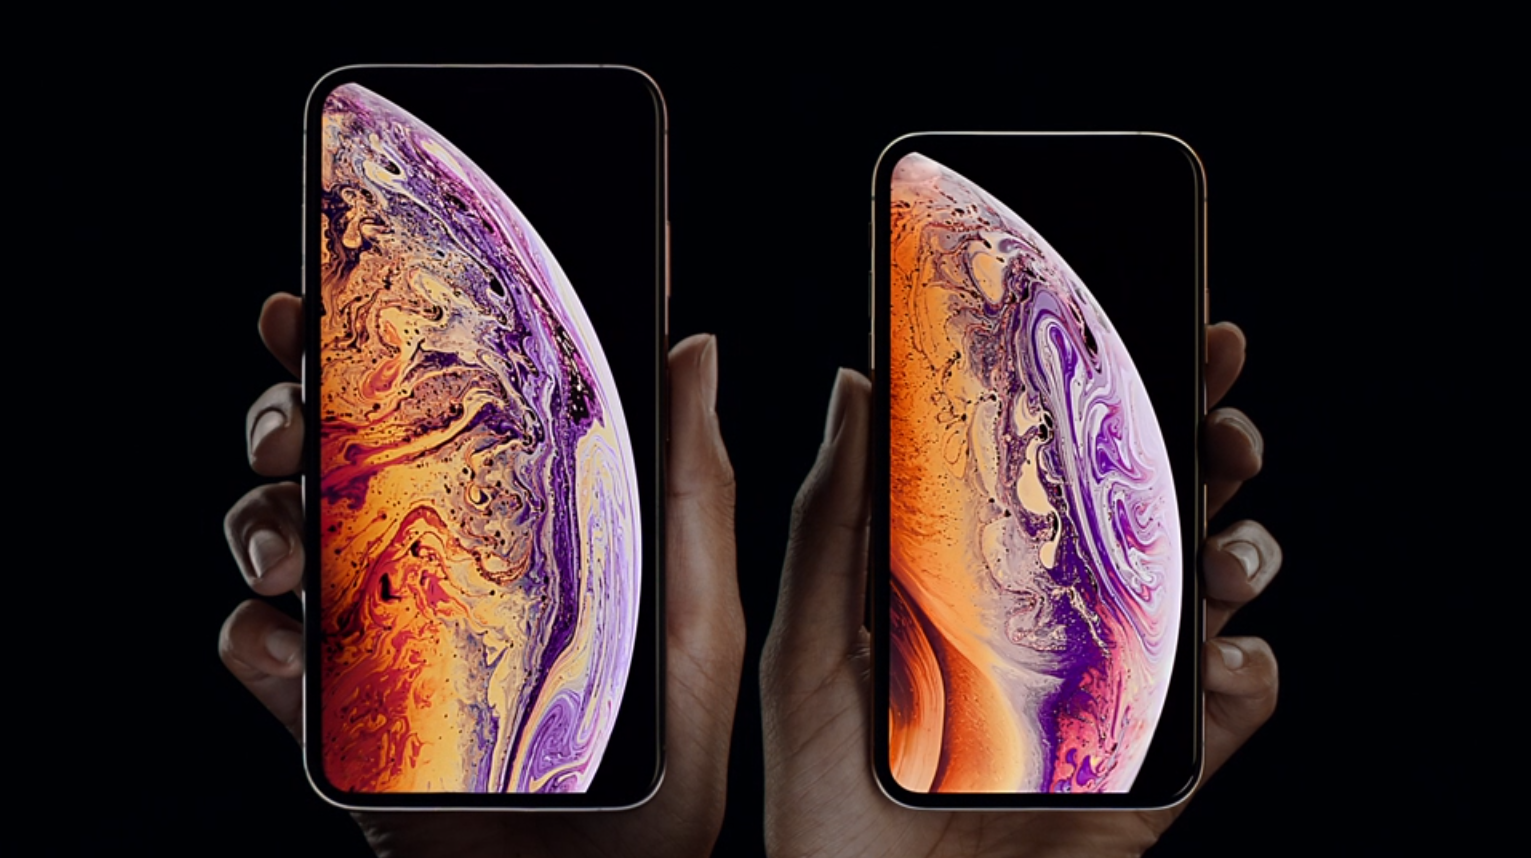 We Need To Talk About Apple's iPhone XS Ads